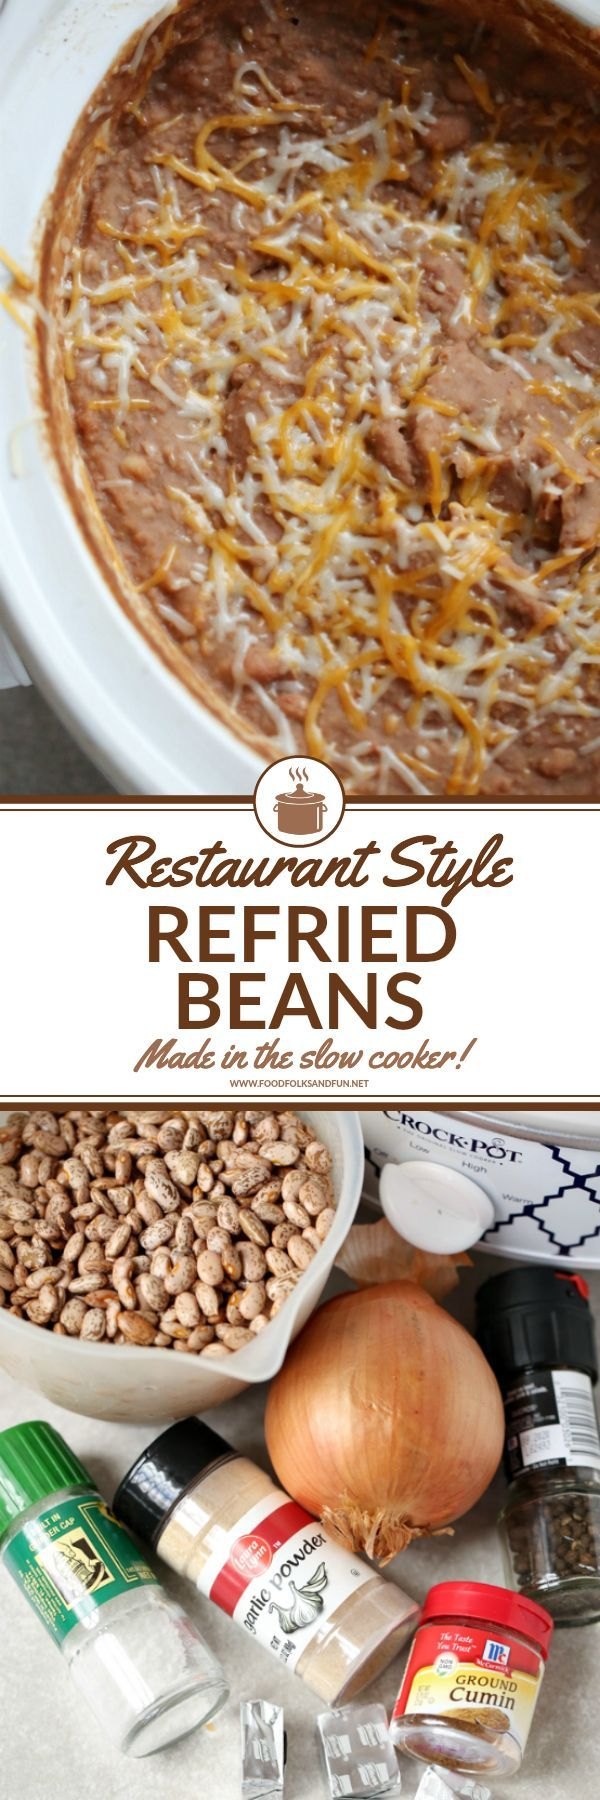 Style Refried Beans recipe – these are the best refried beans! They're made in the crock-pot and taste just like they came from your favorite Mexican restaurant!